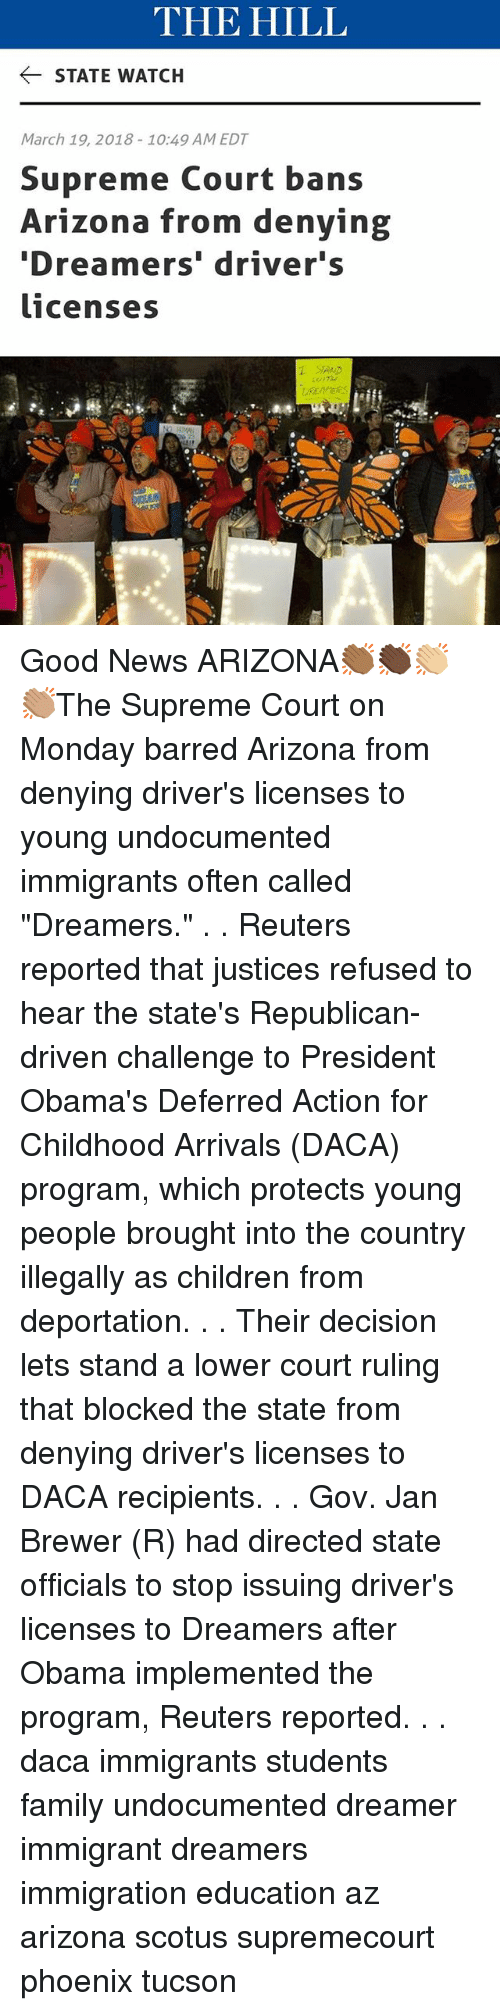 """Children, Family, and Memes: THE HILL  STATE WATCH  March 19, 2018-10:49 AM EDT  Supreme Court bans  Arizona from denying  Dreamers' driver's  licenses Good News ARIZONA👏🏾👏🏿👏🏼👏🏽The Supreme Court on Monday barred Arizona from denying driver's licenses to young undocumented immigrants often called """"Dreamers."""" . . Reuters reported that justices refused to hear the state's Republican-driven challenge to President Obama's Deferred Action for Childhood Arrivals (DACA) program, which protects young people brought into the country illegally as children from deportation. . . Their decision lets stand a lower court ruling that blocked the state from denying driver's licenses to DACA recipients. . . Gov. Jan Brewer (R) had directed state officials to stop issuing driver's licenses to Dreamers after Obama implemented the program, Reuters reported. . . daca immigrants students family undocumented dreamer immigrant dreamers immigration education az arizona scotus supremecourt phoenix tucson"""